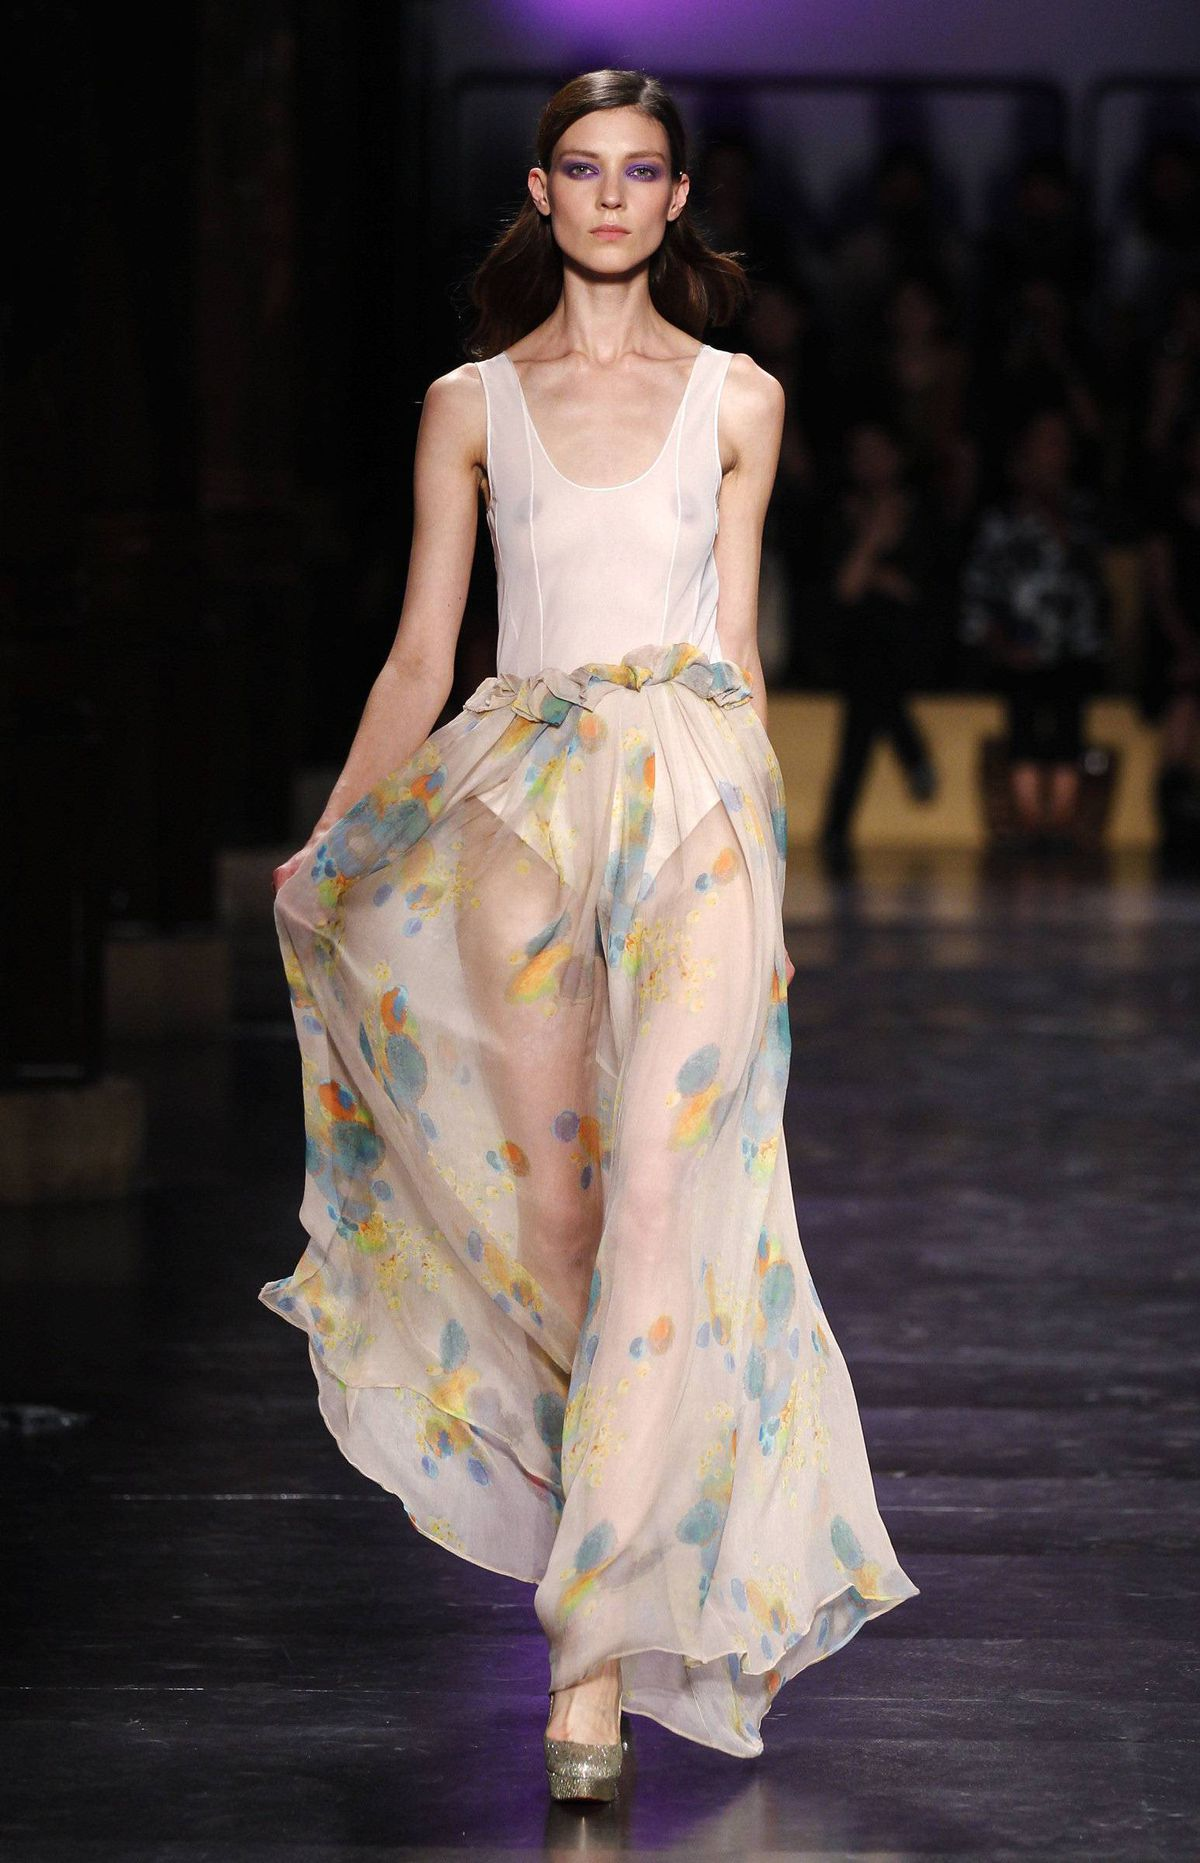 Ah, the gauzy, knicker-revealing skirt. For spring, the winning way to show a little leg is the suggestion of it from under a diaphanous dress.